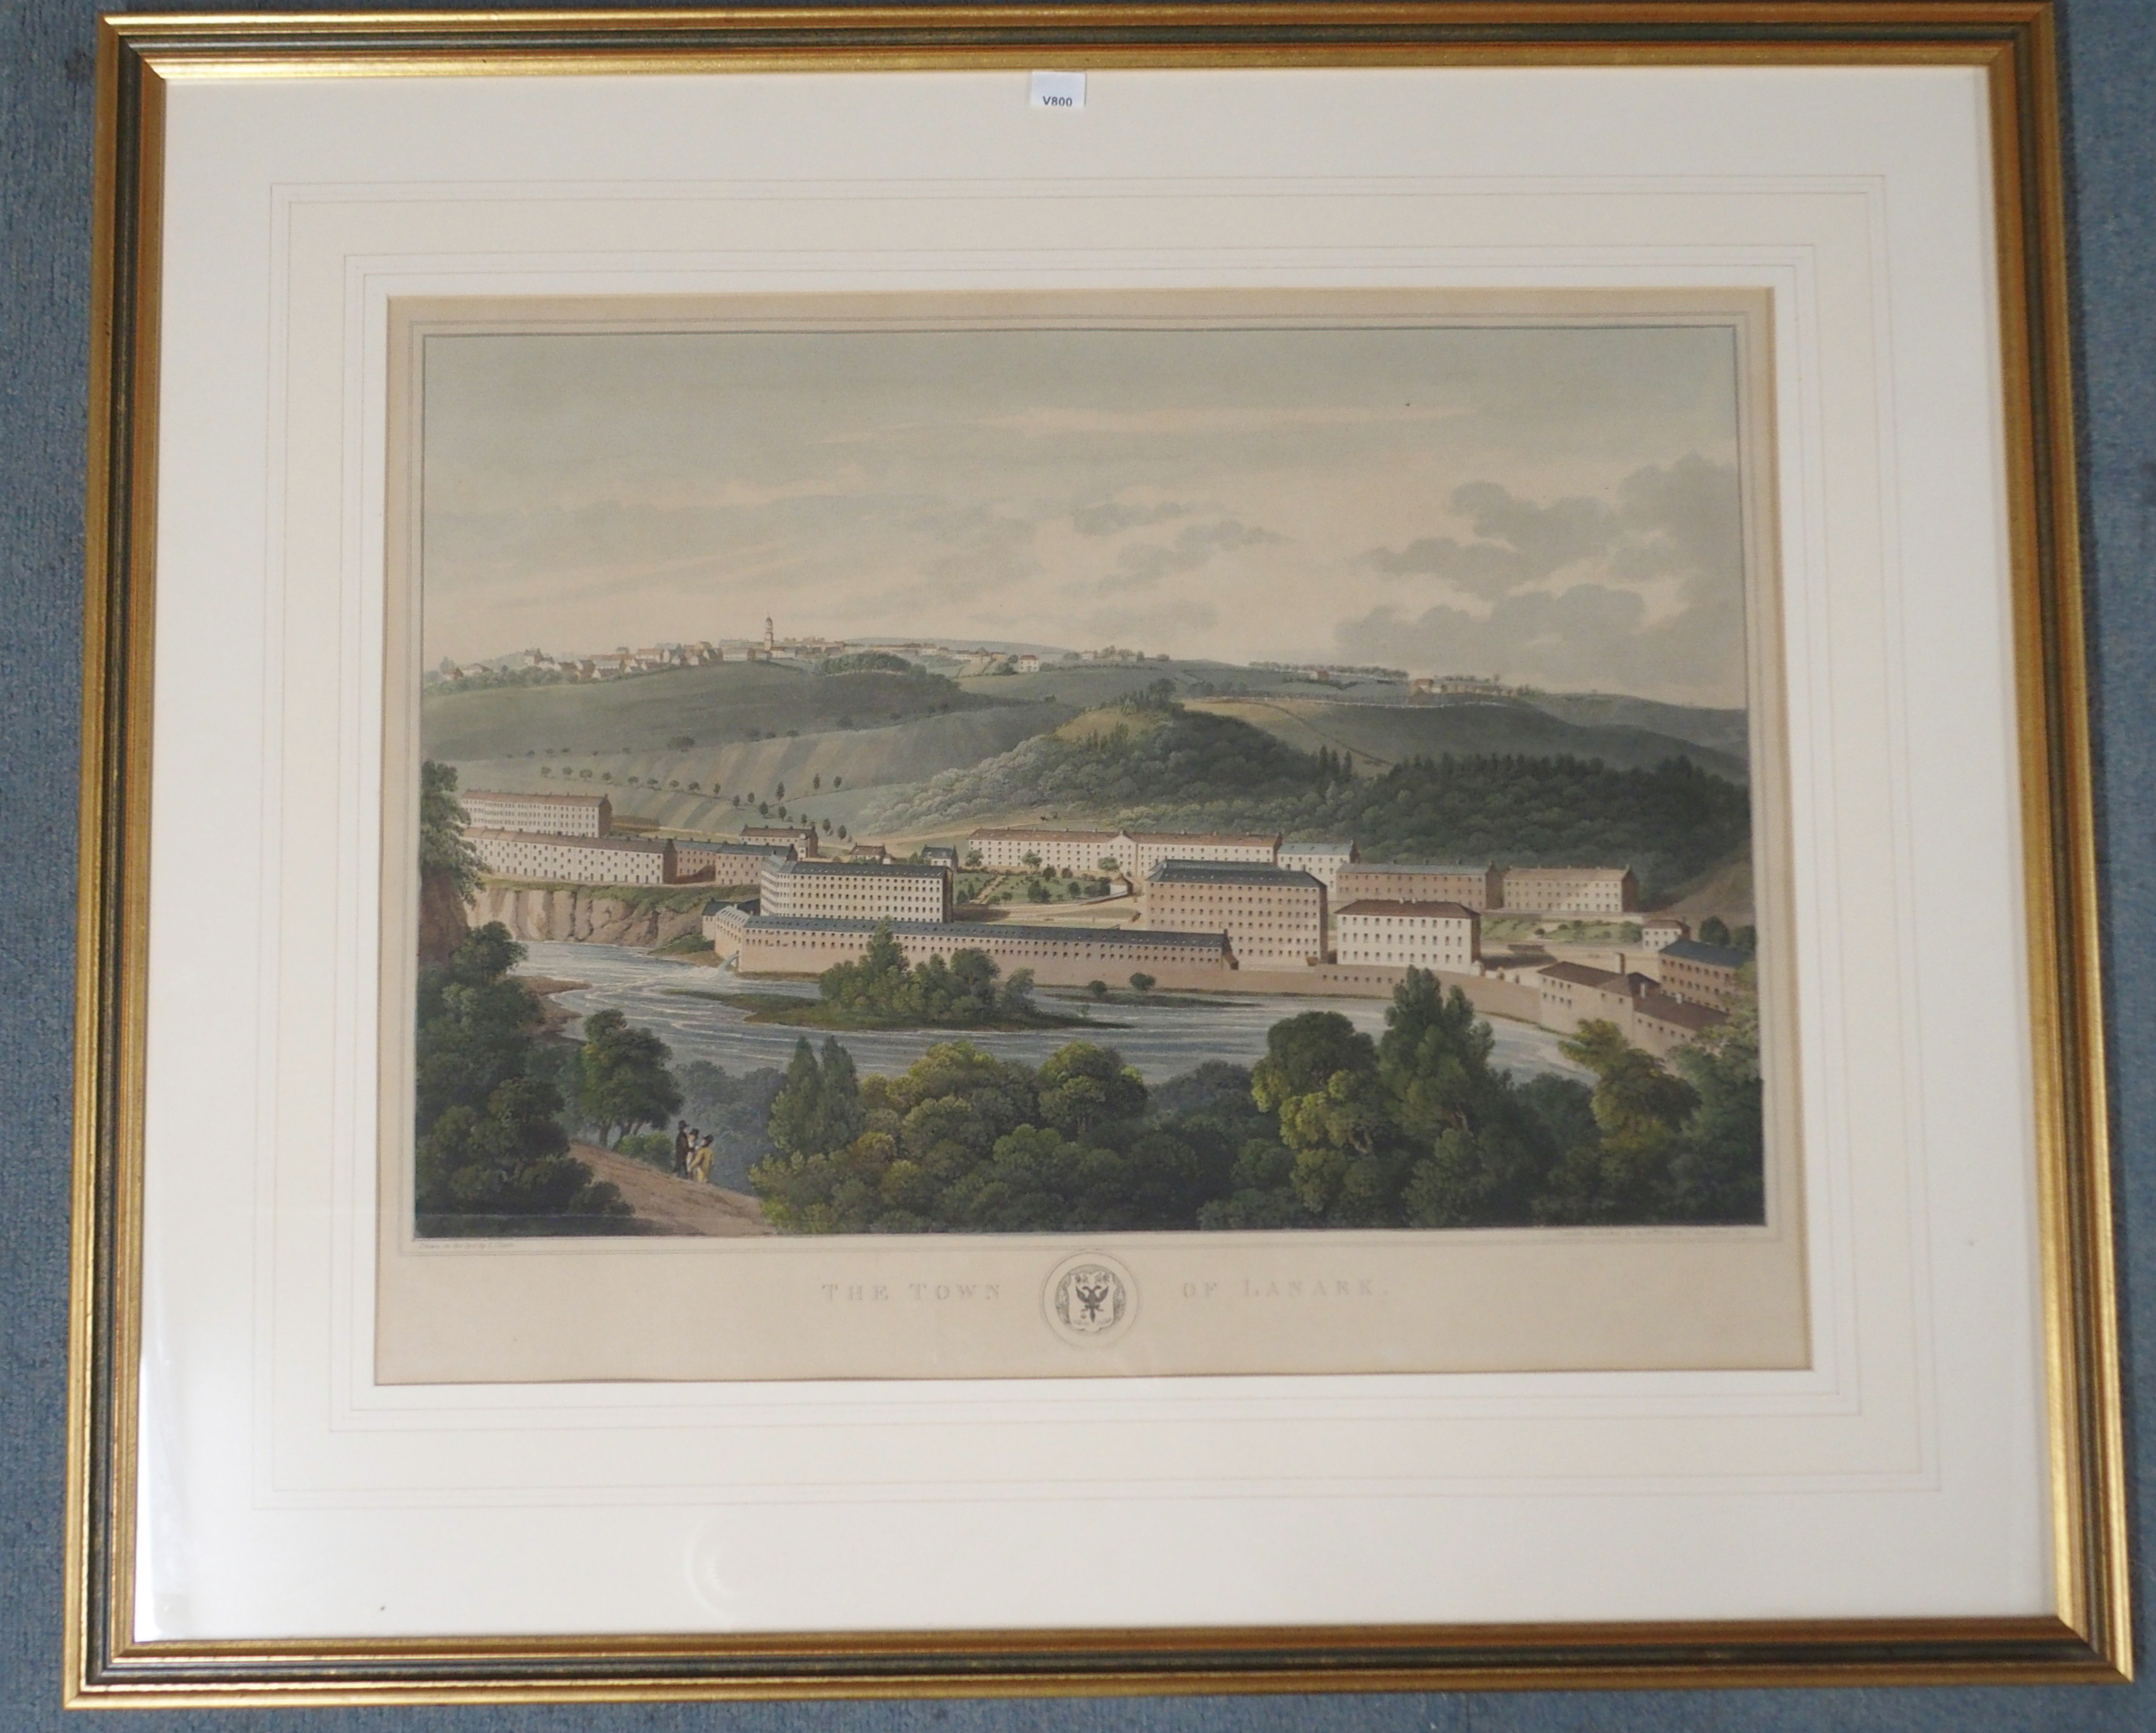 AFTER CLARK THE TOWN OF LANARK aquatint, 46 x 59cm, A View of New Lanark from the South, 14 x - Image 2 of 6